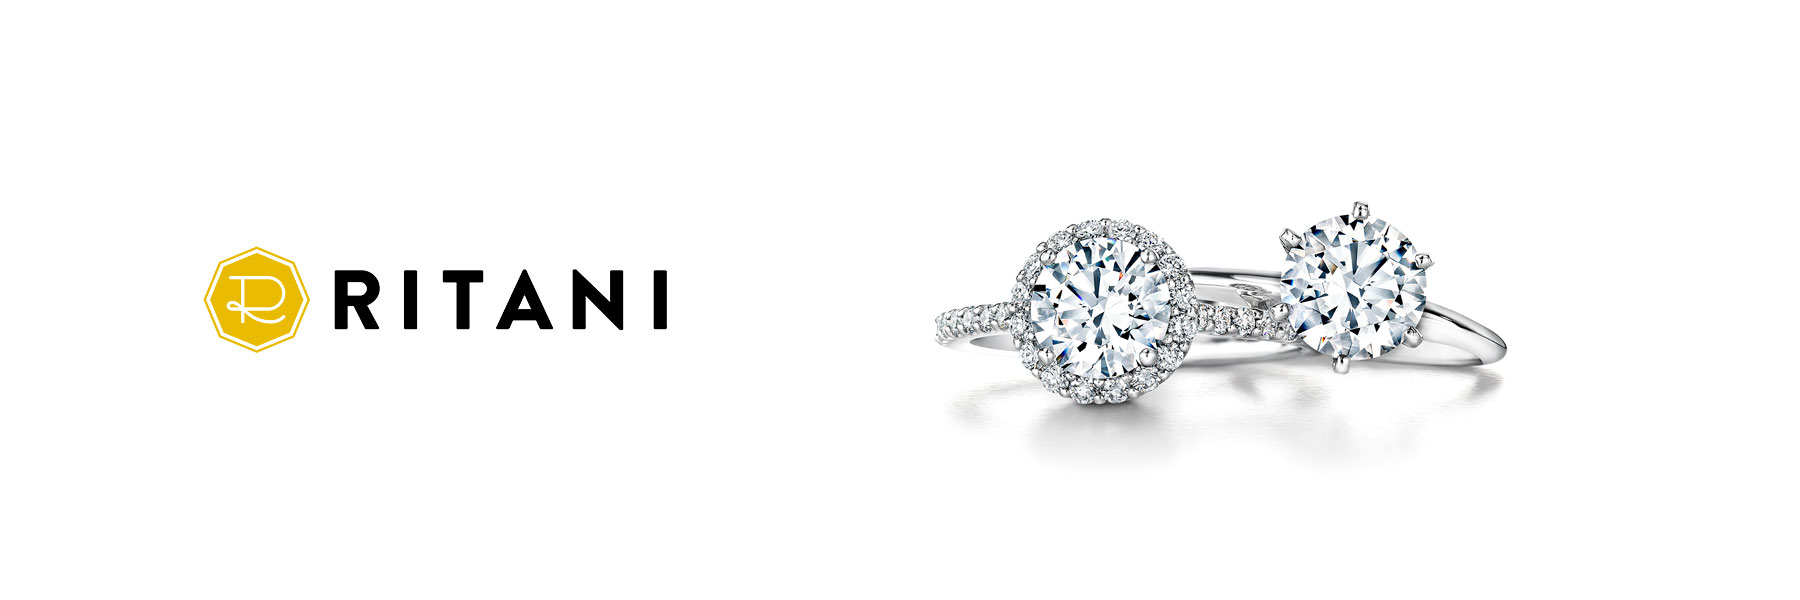 Engagement Ring? Payments We Accept All Major Credit Cards, American  Express, Master Card, Visa And Discover We Also Offer Layaway Plan's